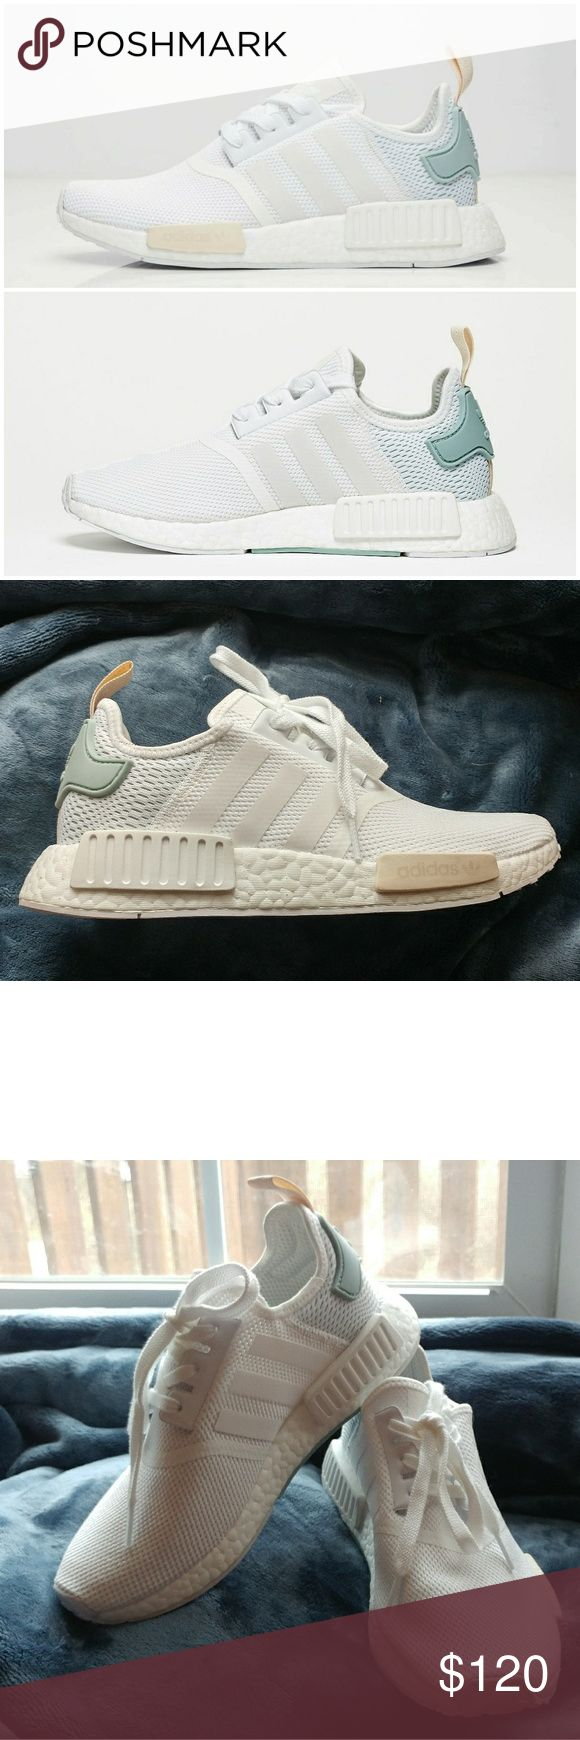 Adidas NMD R1 *RARE* ** PLEASE NOTE, THESE ARE NO LONGER BEING MADE/SOLD. THEY ARE CURRENTLY BEING RESOLD FOR $200 - $700+**  I got these for Christmas but they aren't really my style, sneakers have never been worn outside. There is a slight stain (see last picture) which I think was from me applying make-up prior to trying these on, but with a little bit of clean up work it can be removed. These are brand new with no box, one of the shoes still has the cardboard in it to keep its shape…